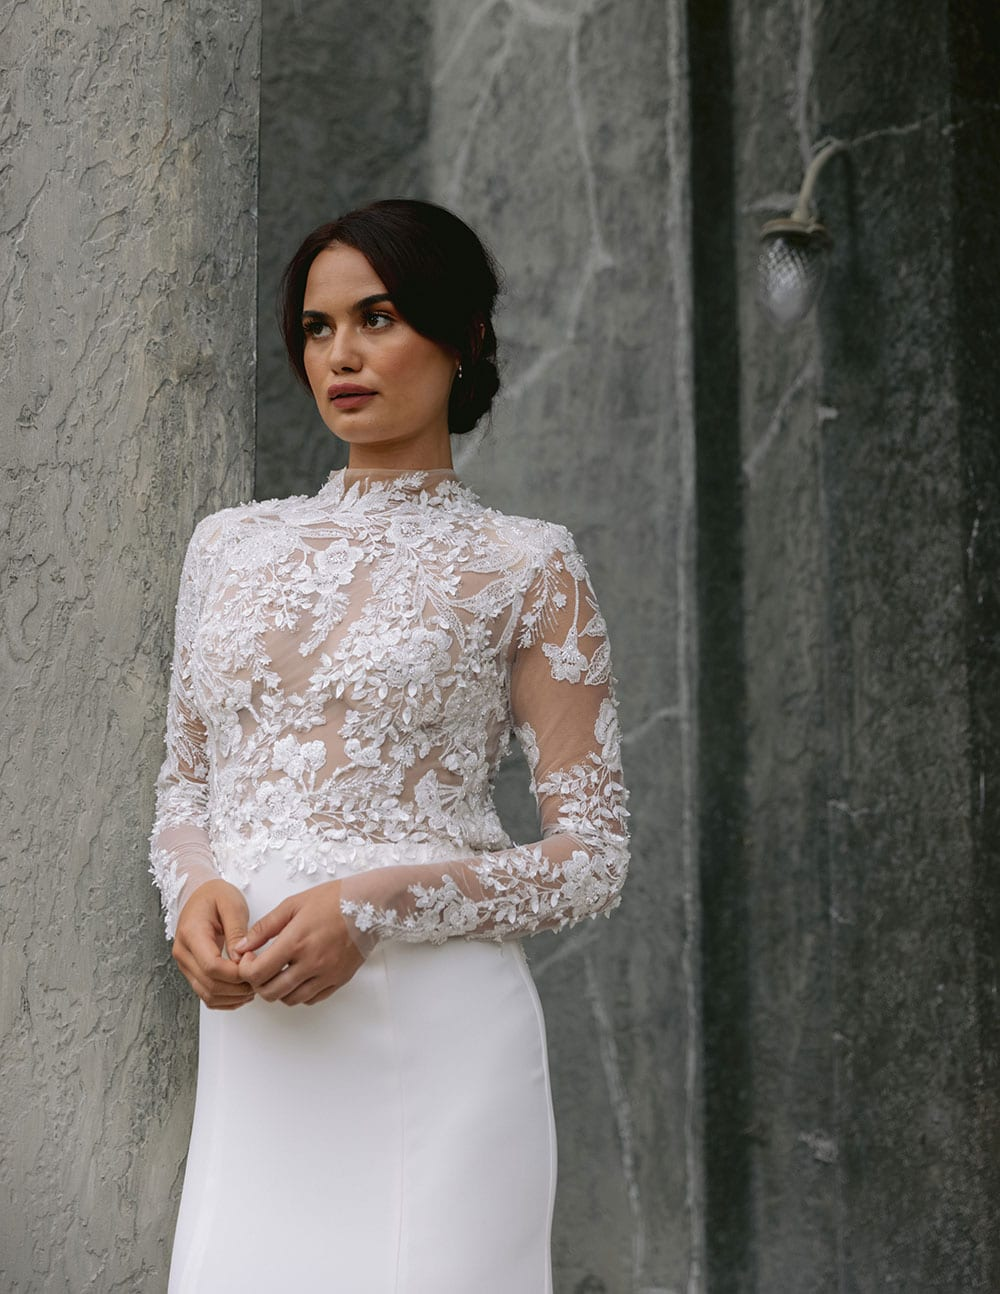 Moana Wedding gown from Vinka Design - Spectacular wedding dress perfect for the modern bride who still wants a classic spark! 3D lace embroidery complemented by a high neckline, fitted sleeves, and stunning low back into a flare train. Model wearing gown showing 3D lace detail at front and long sleeves.